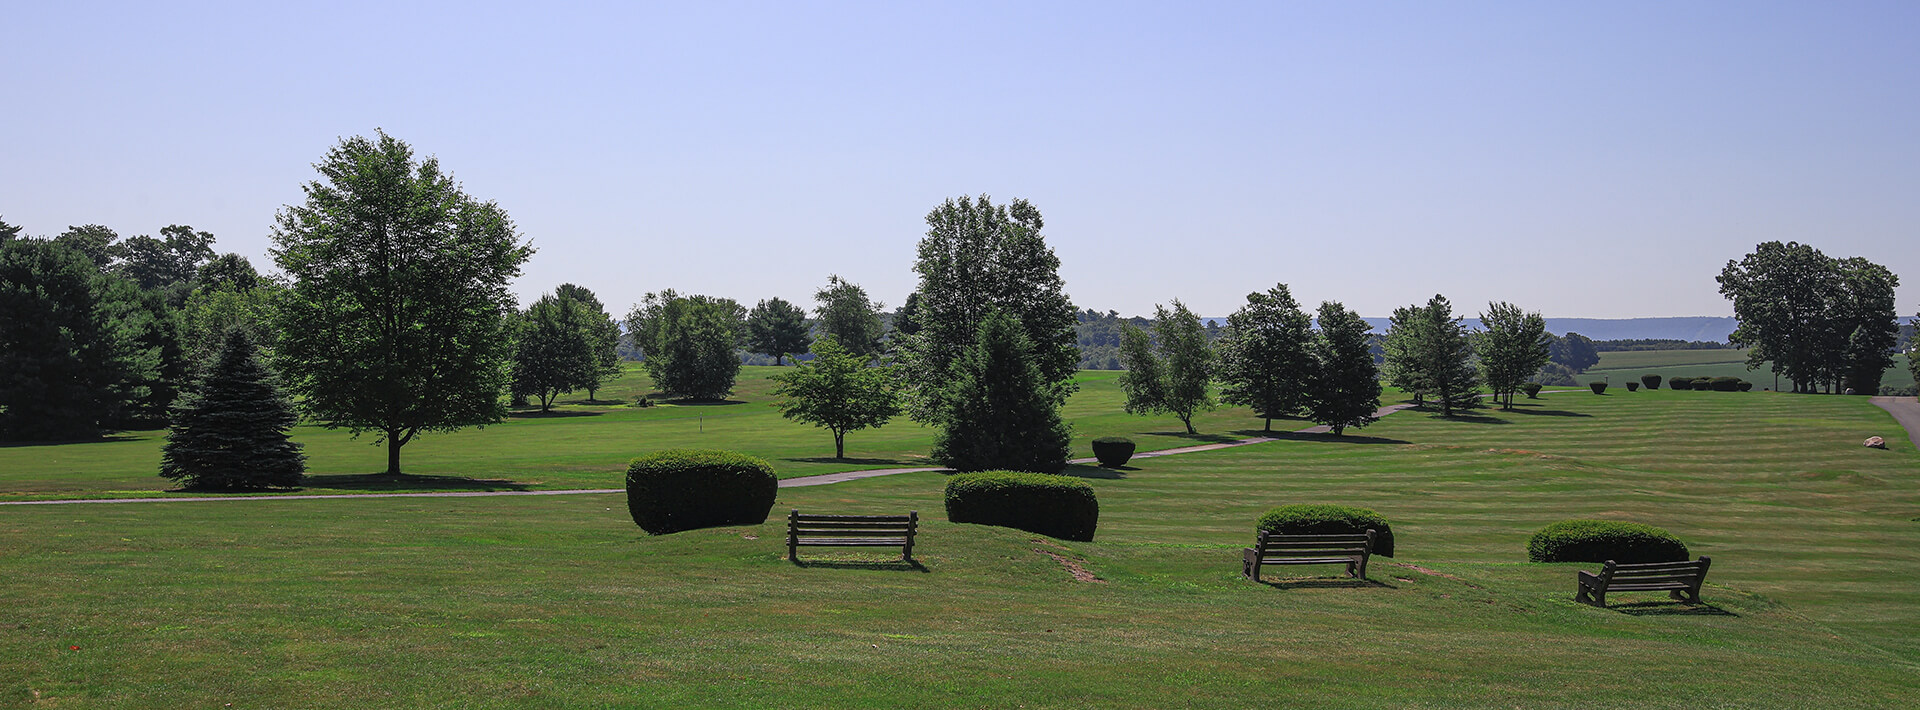 A view of the benches at the Hideaway Hills golf course